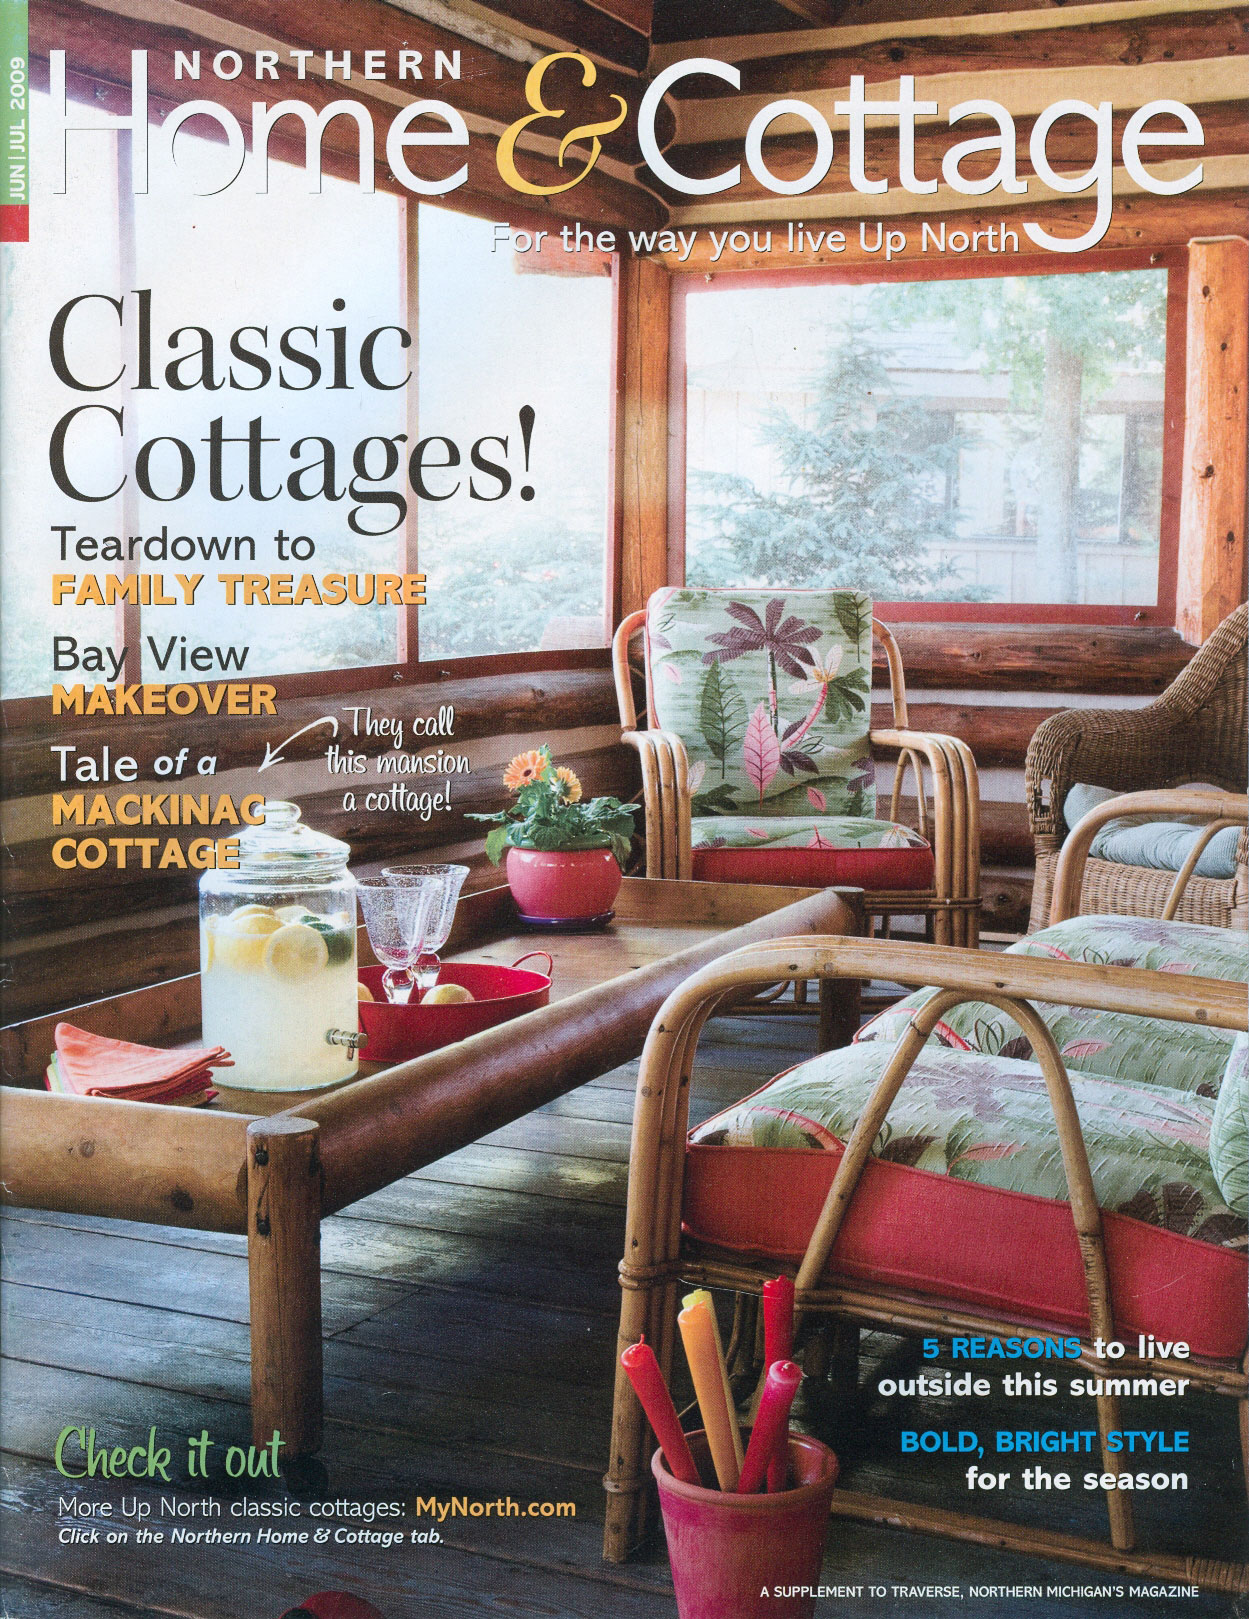 Jon sarkesian architecture publications northern home Home and cottage magazine